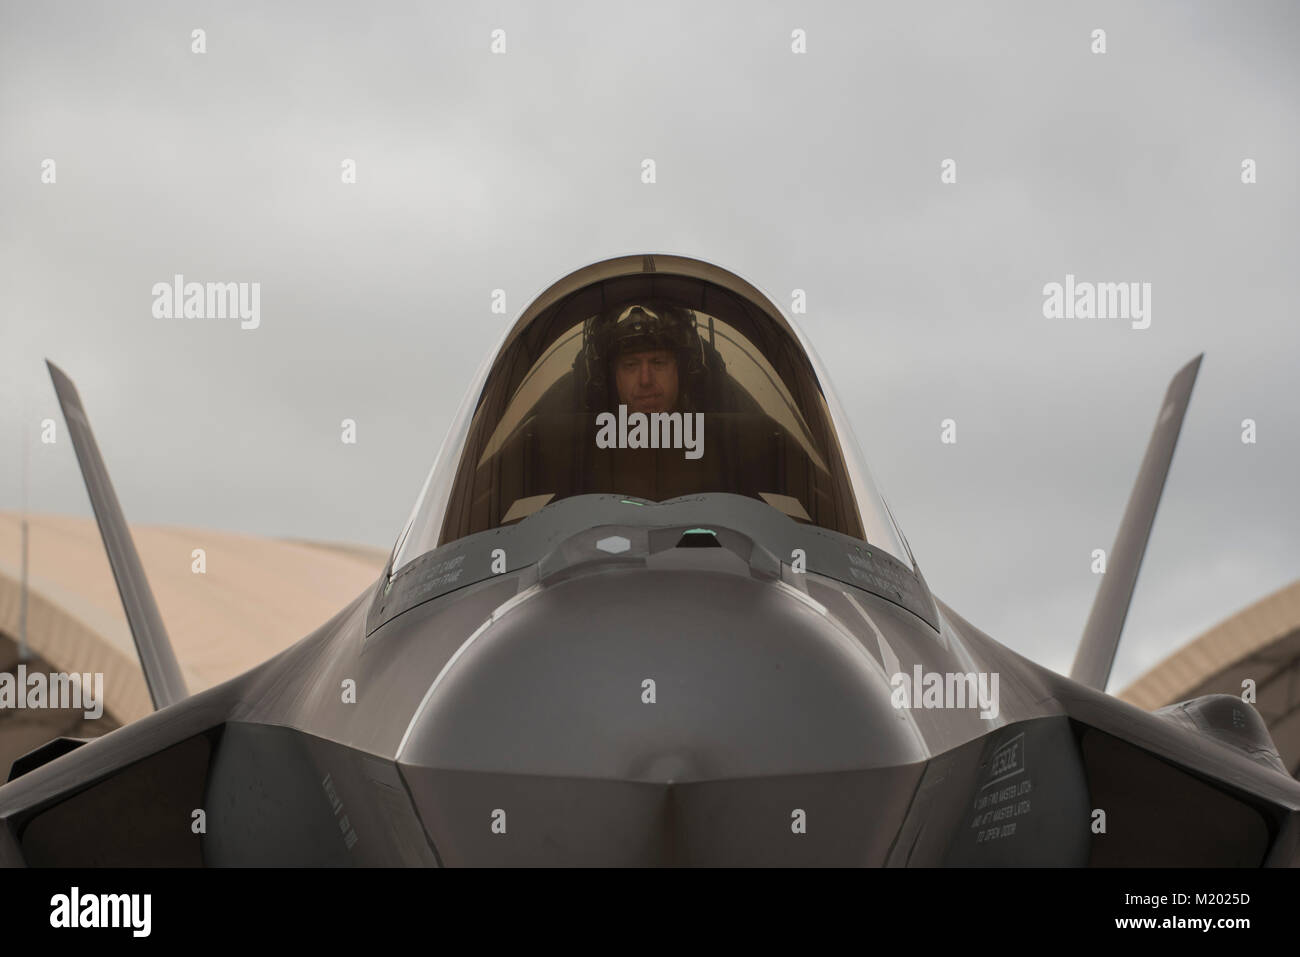 U.S Air Force Lt. Col. Bradley Turner, 86th Fighter Weapons Squadron F-35 lead evaluator, sits in an F-35A Lightning - Stock Image